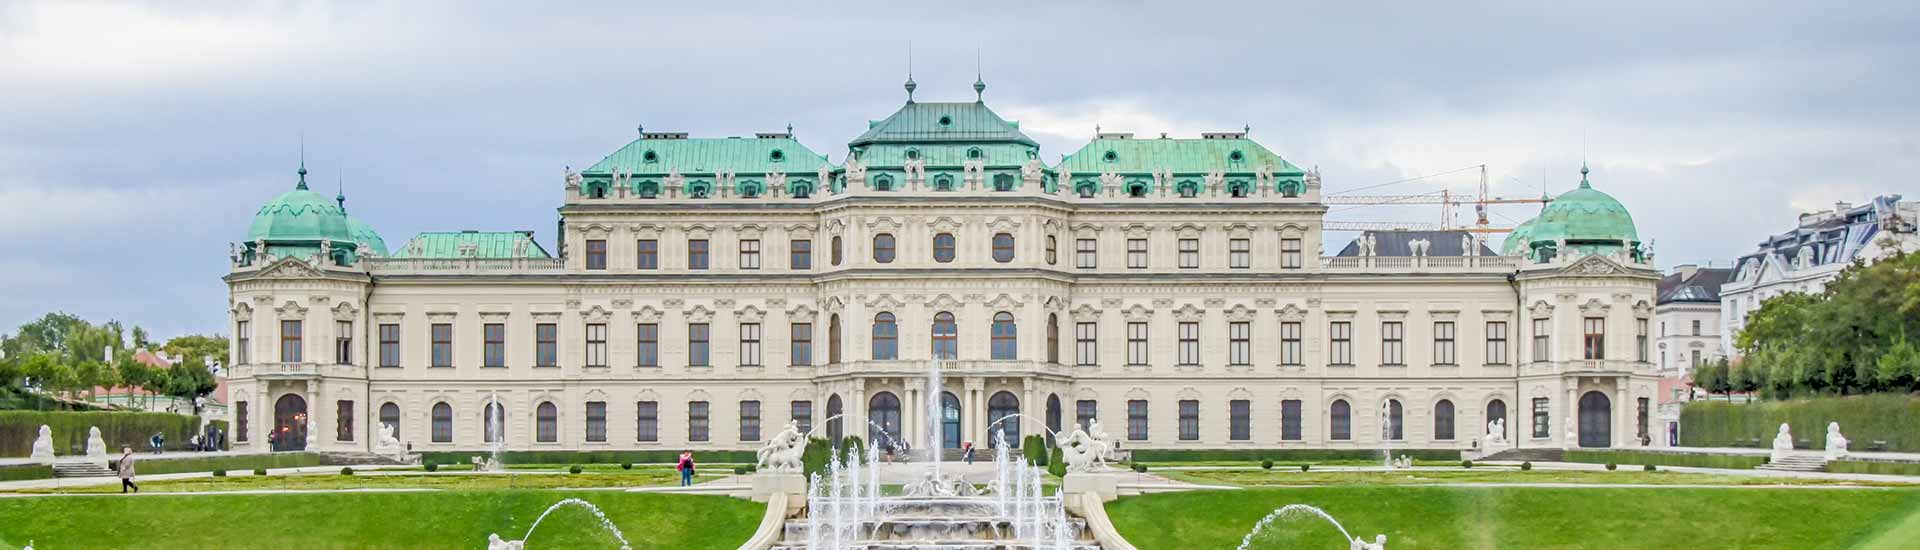 where to stay in vienna austria